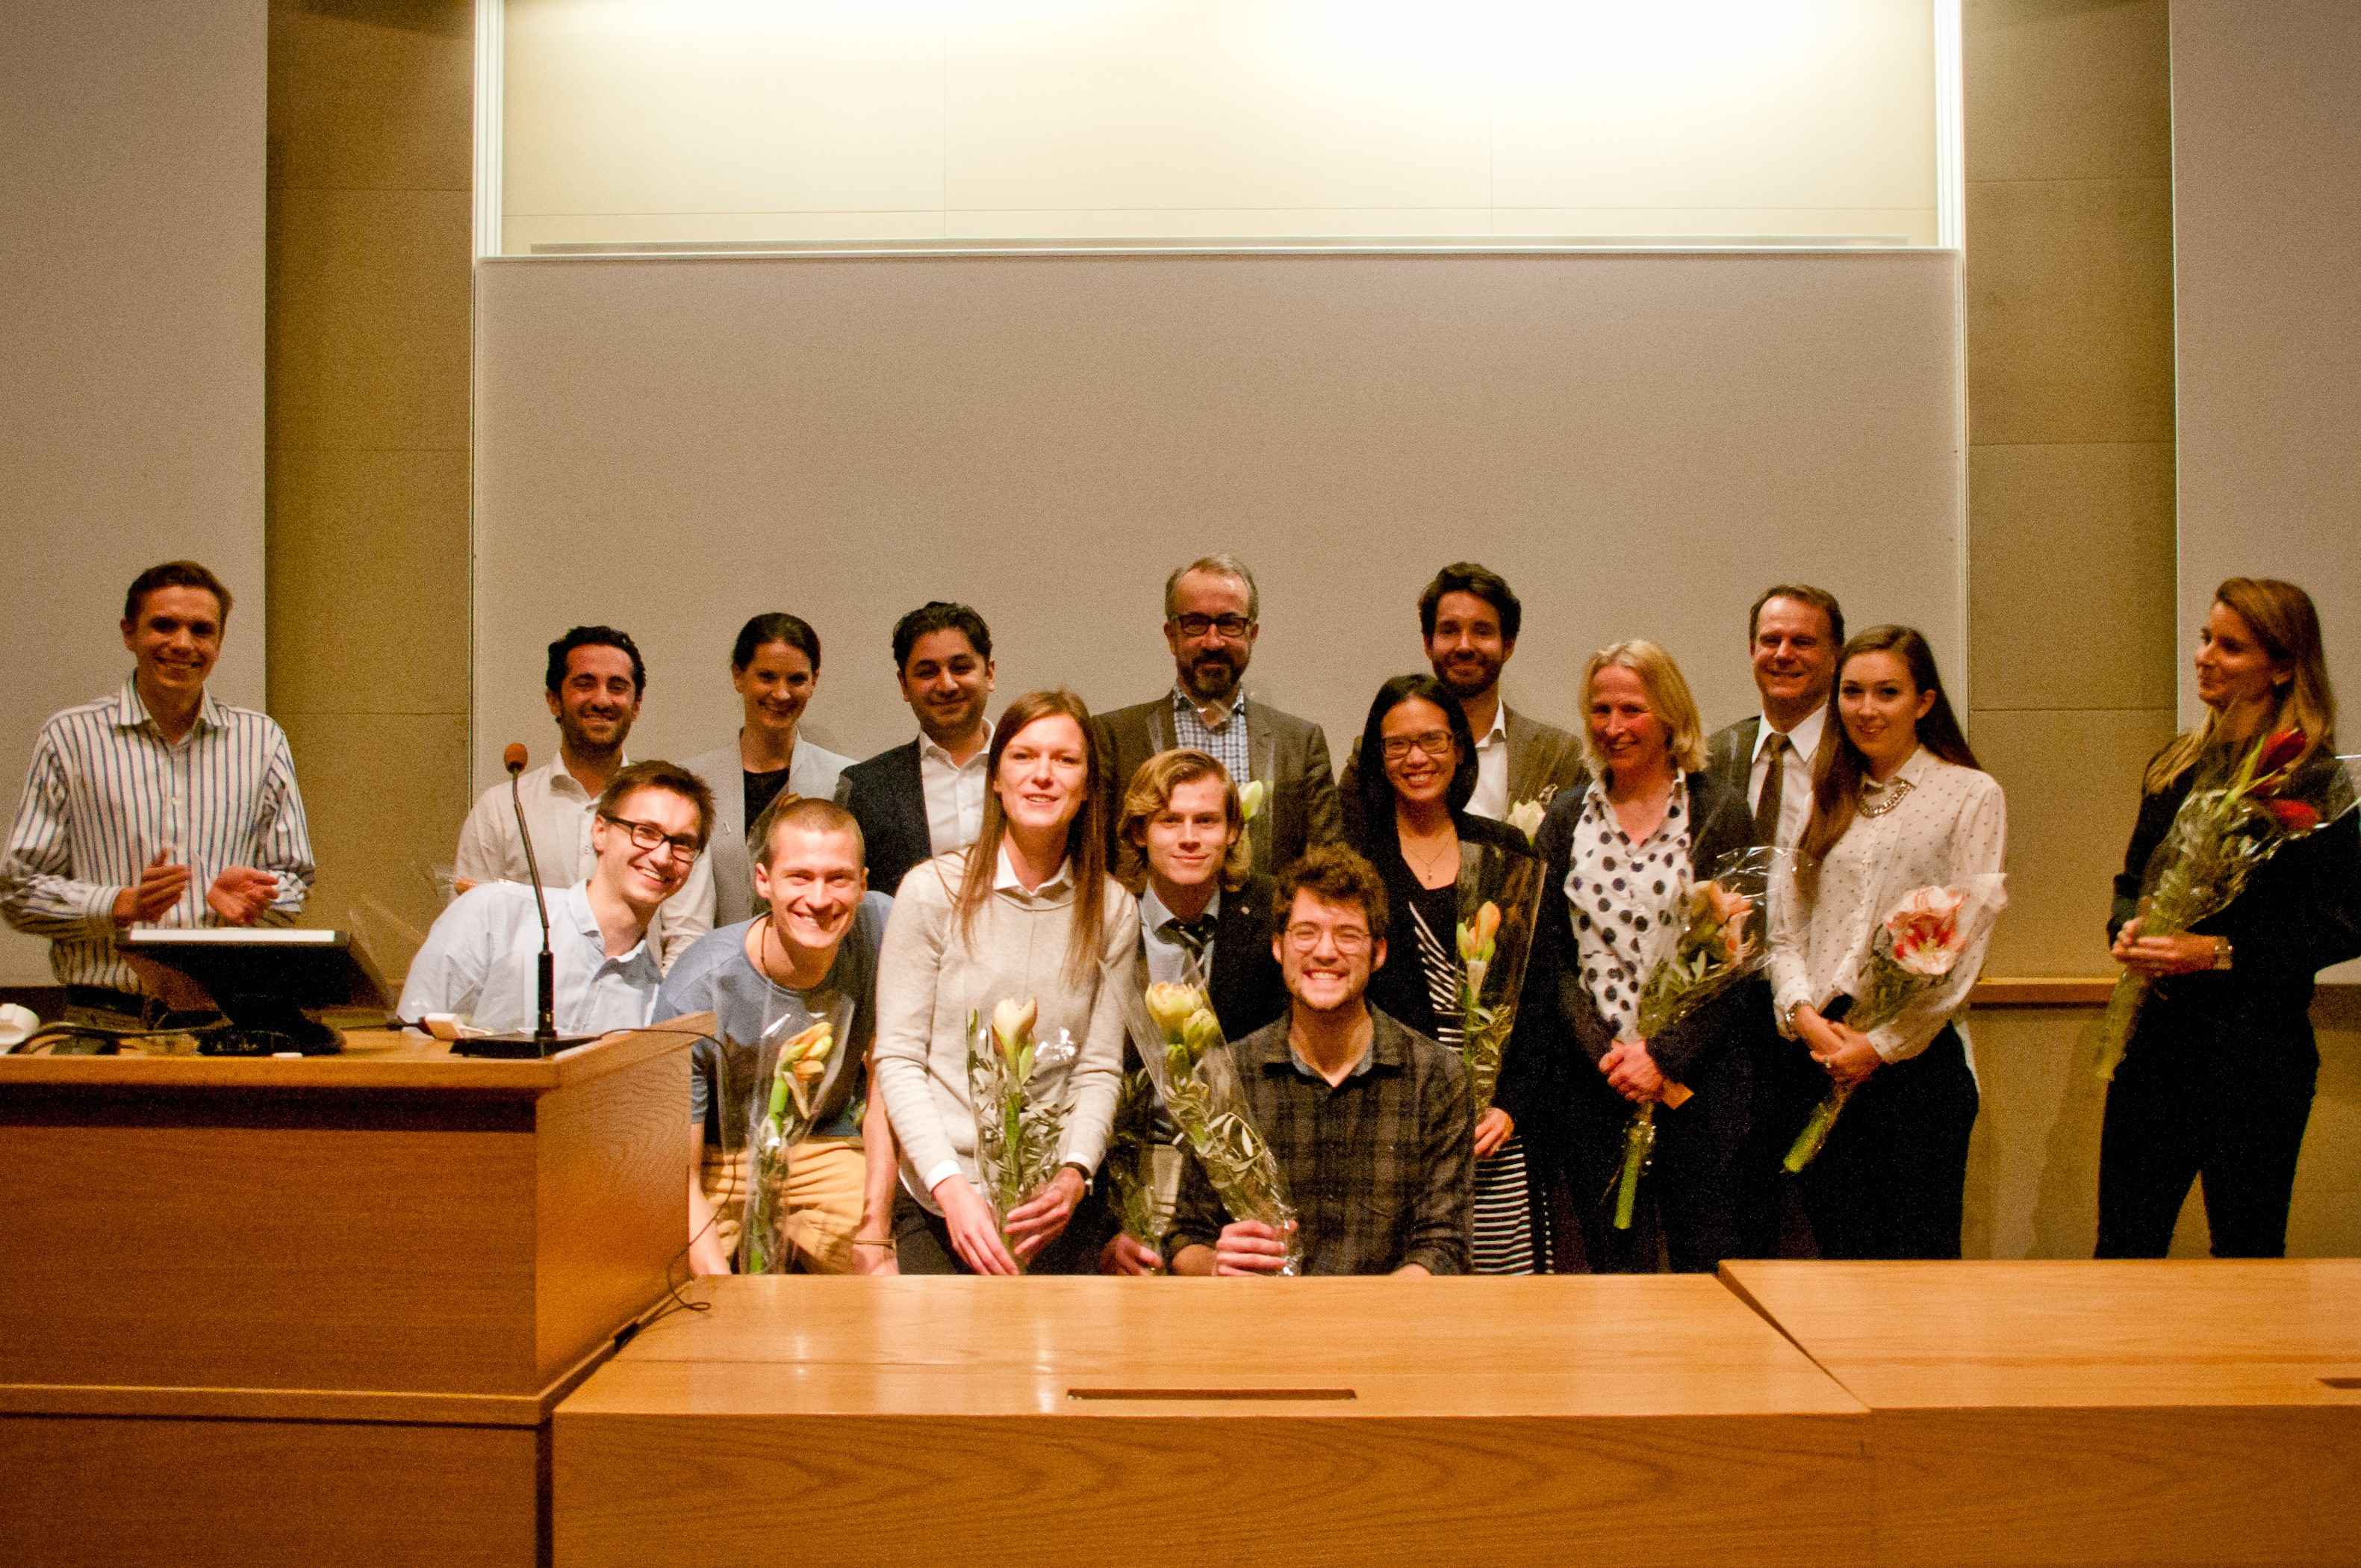 The Hult Prize national final at Stockholm School of Economics